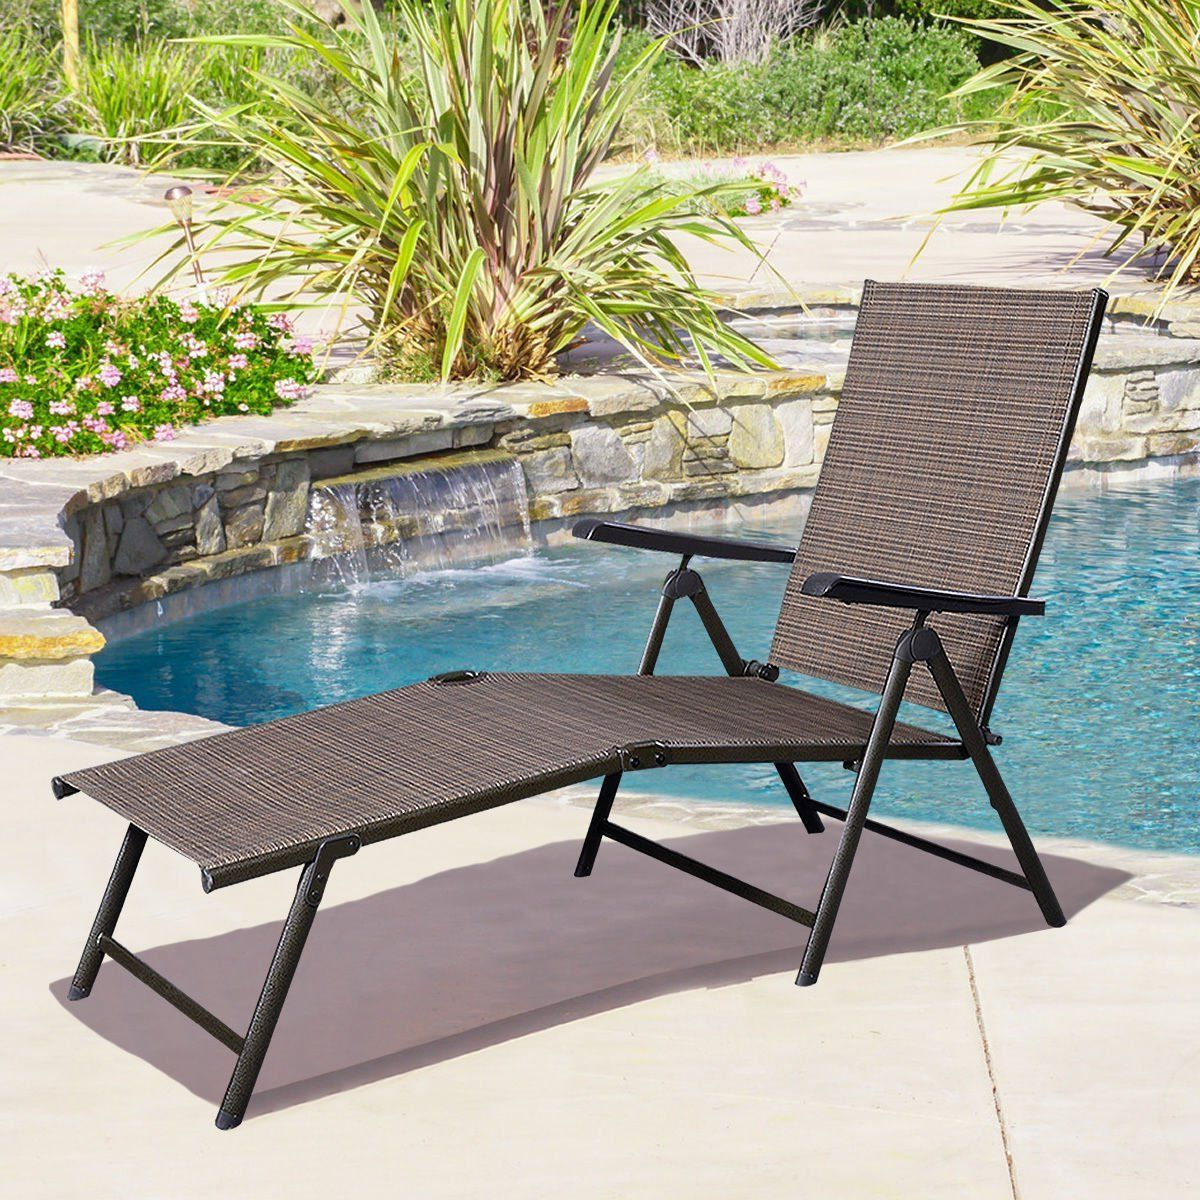 Outdoor Yard Pool Recliner Folding Lounge Table Chairs Regarding Best And Newest Adjustable Pool Chaise Lounge Chair Recliner Outdoor Patio (View 7 of 25)